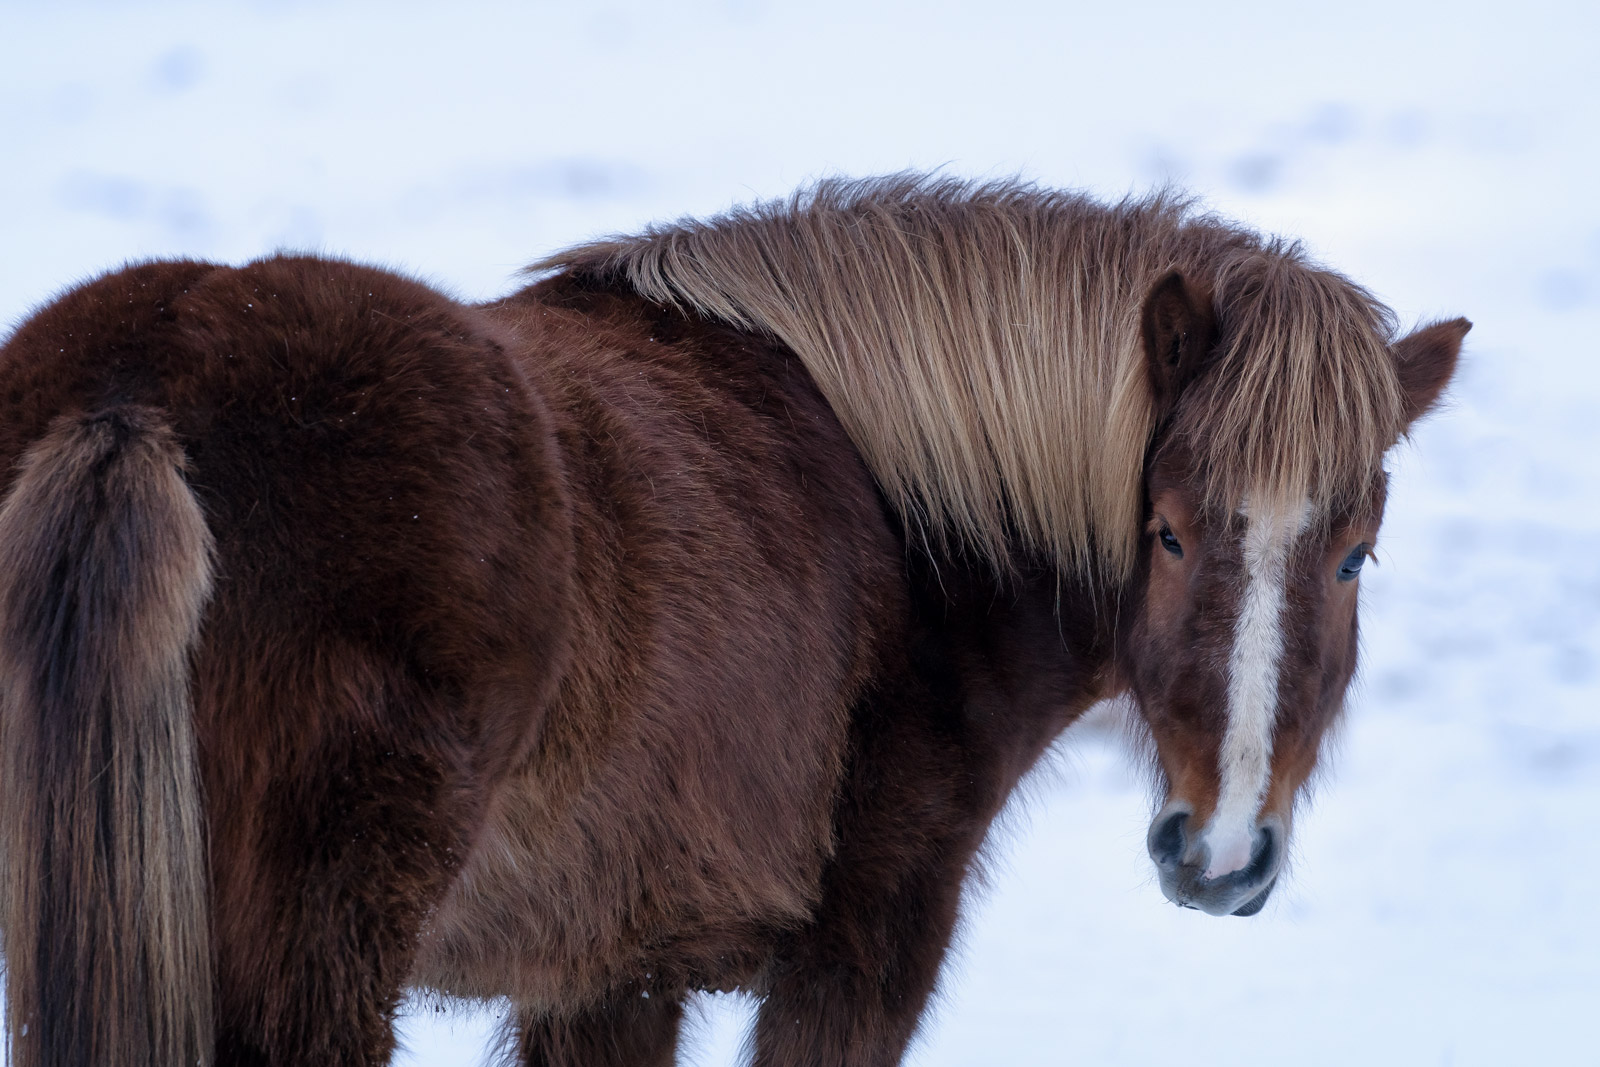 Iceland, Icelandic, Horses, Winter, Snow, photo